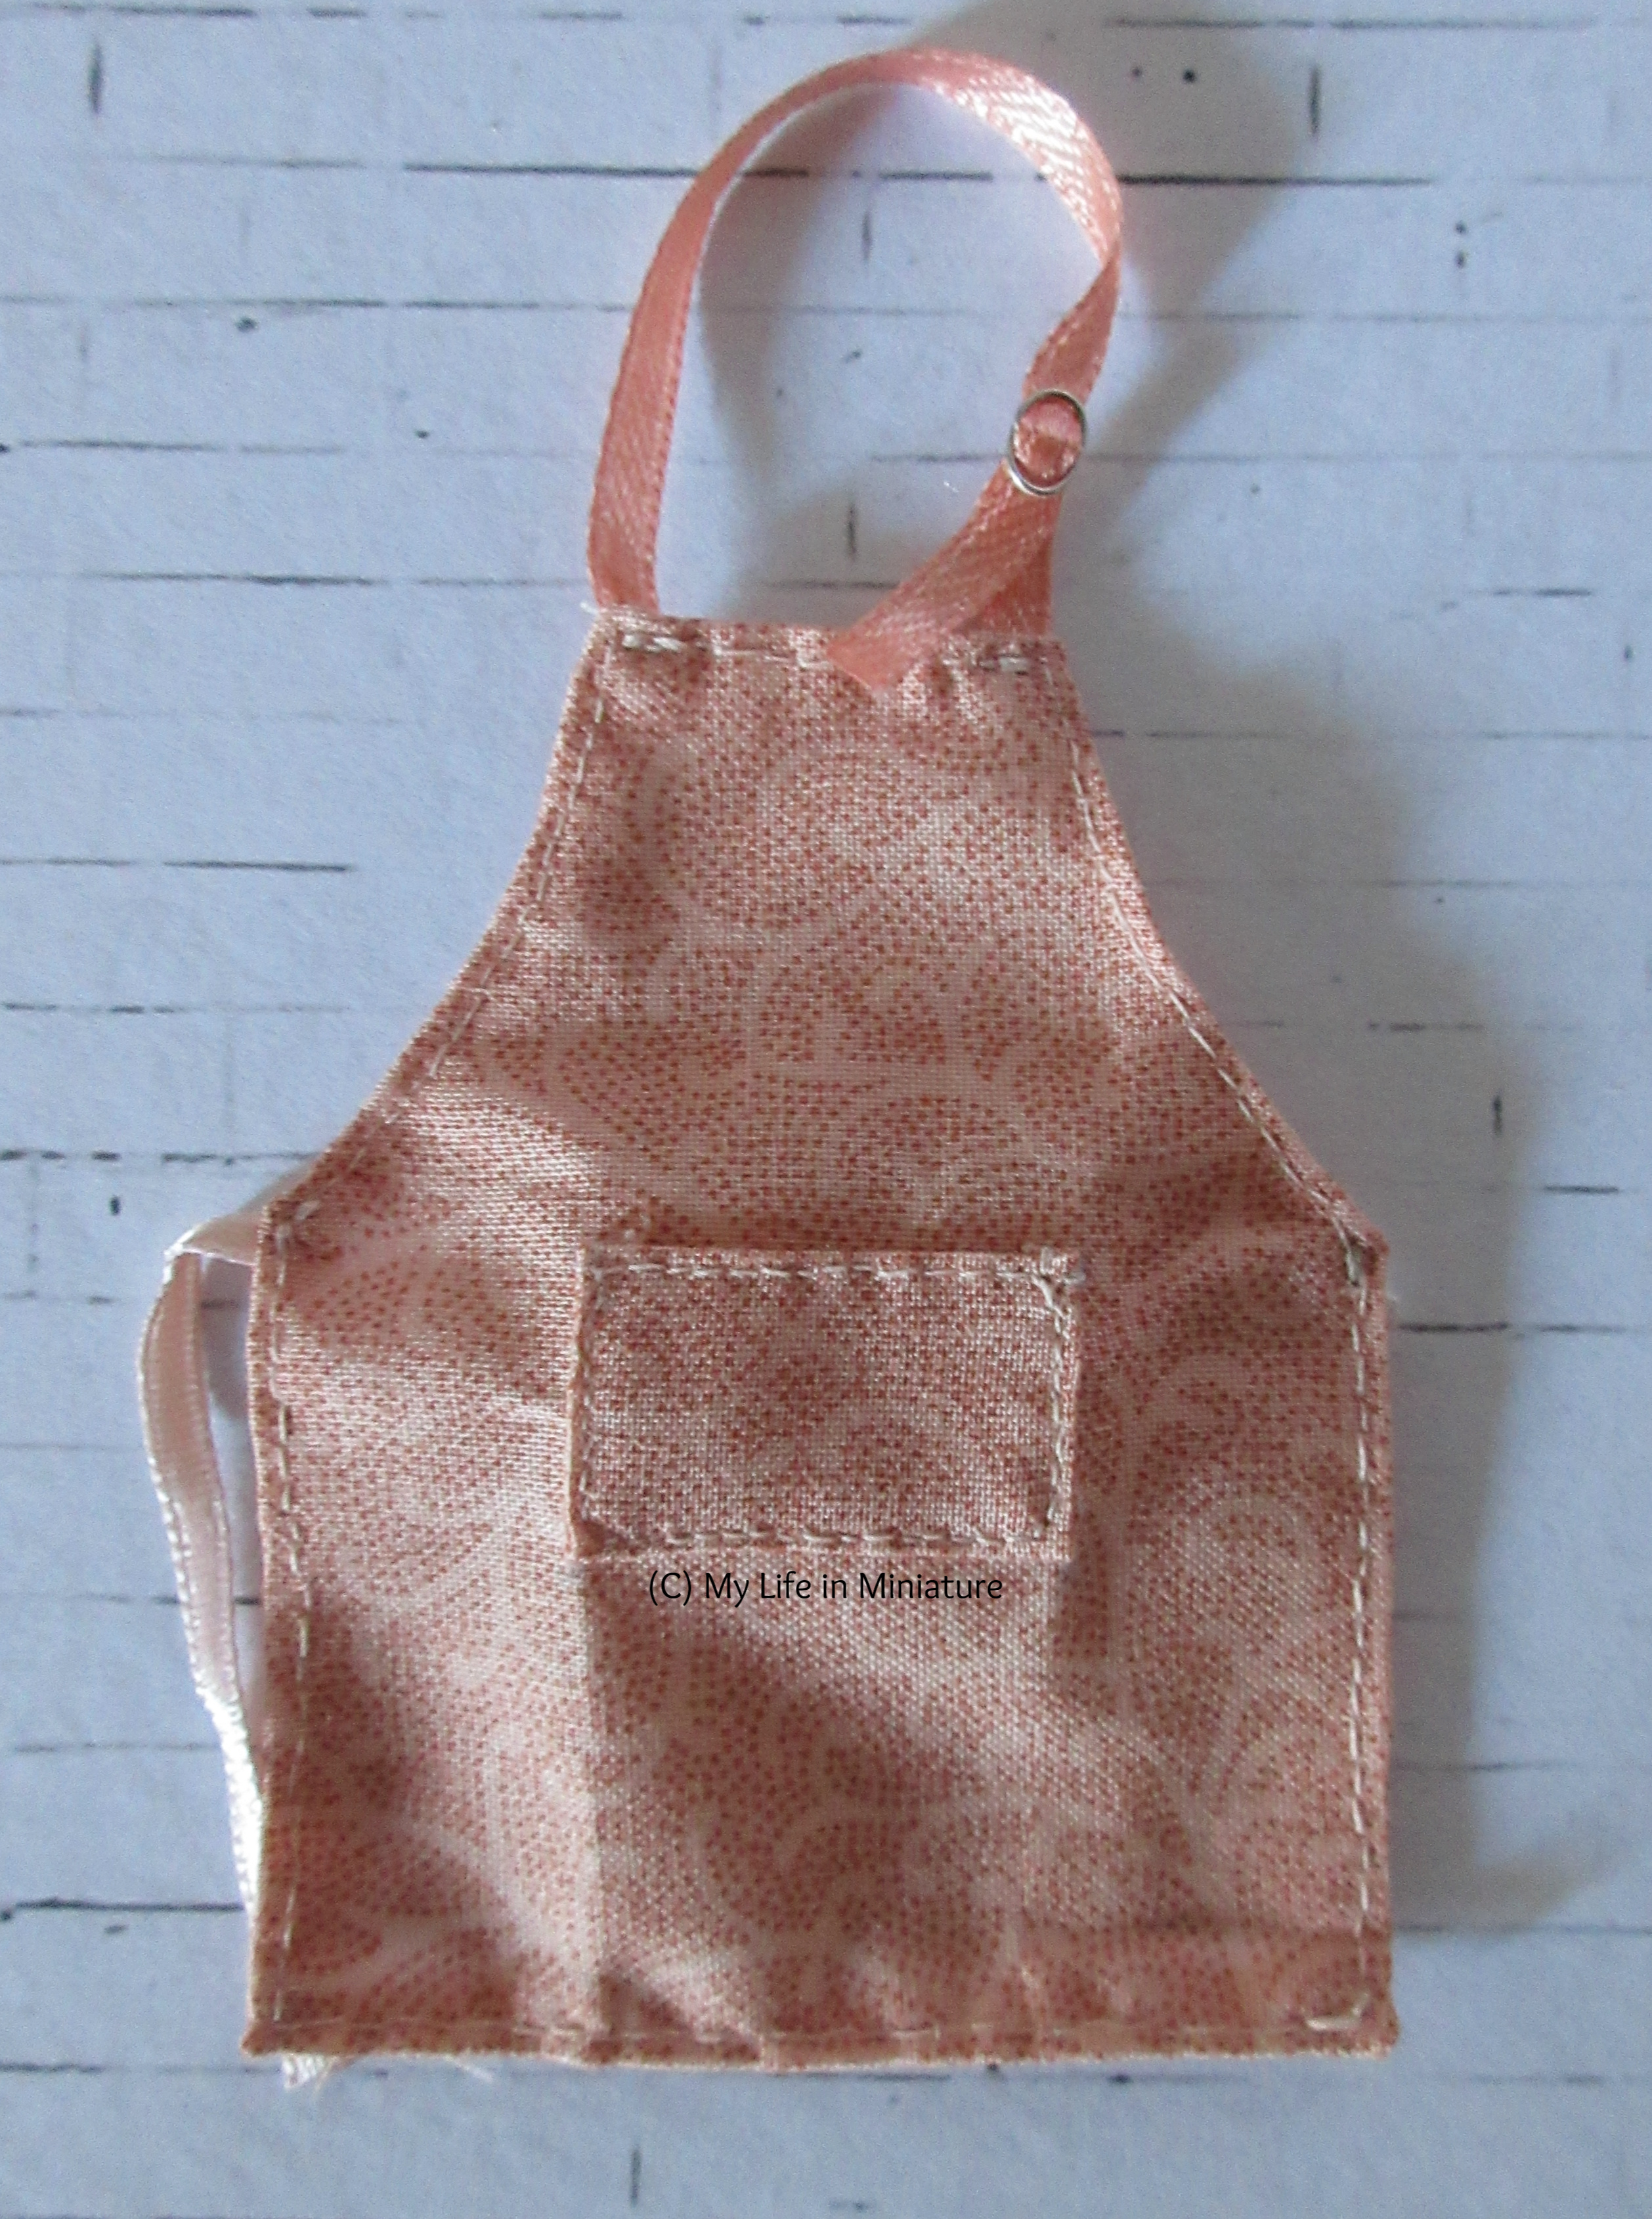 The pink apron sits on a white brick background.